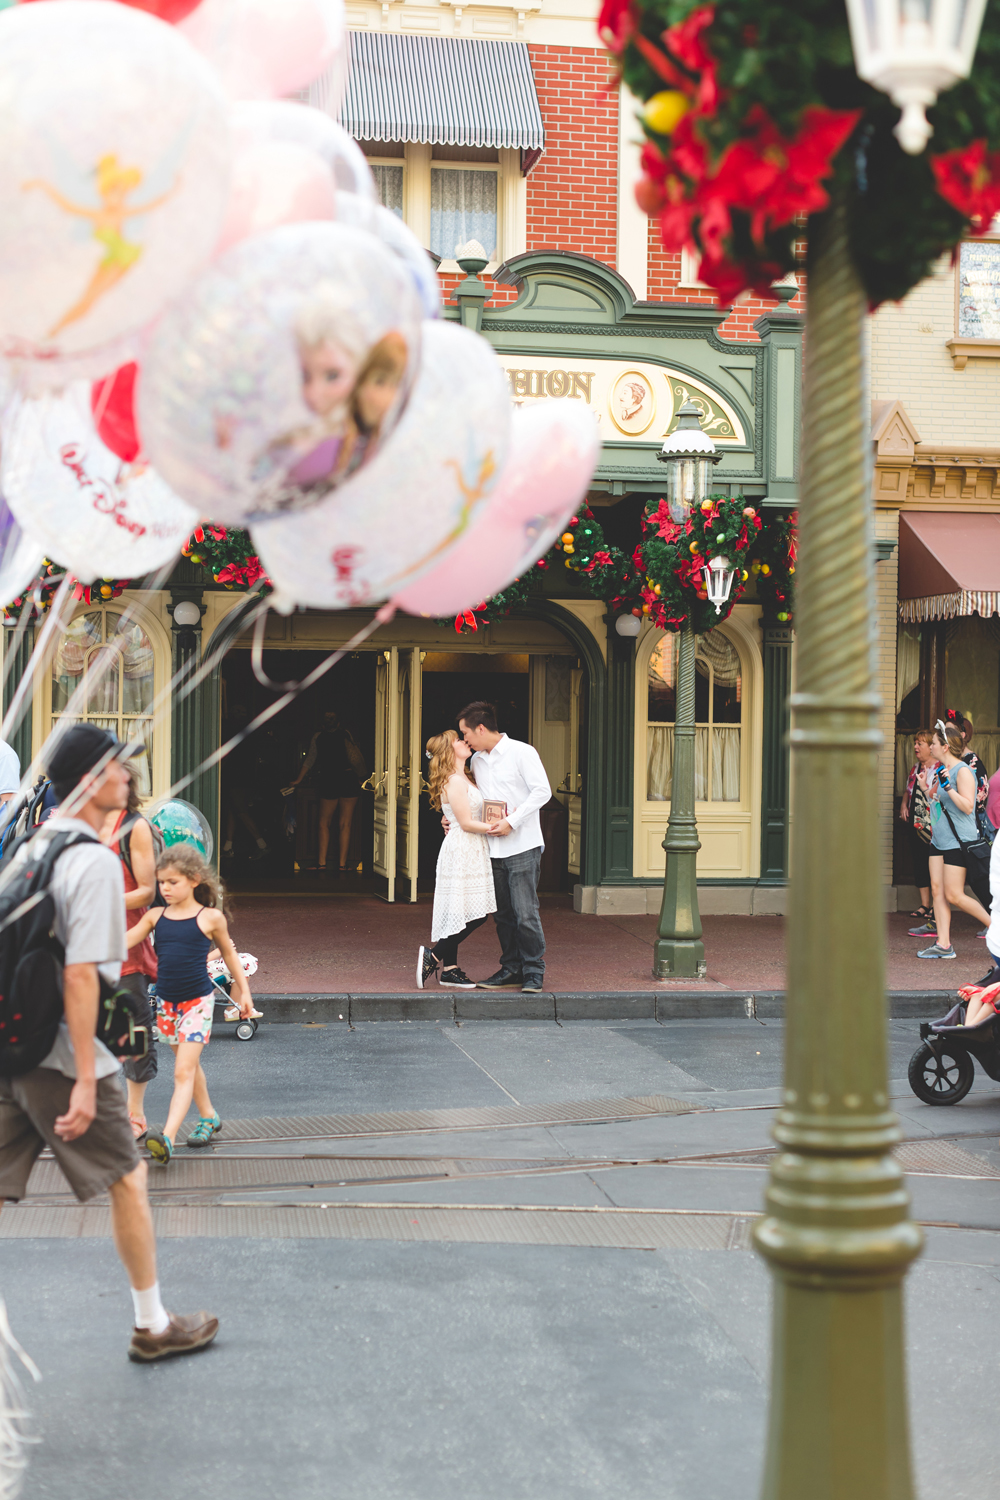 Disney Honeymoon session - Disney Engagement Photos - Disney Wedding Photographer - Destination Orlando Wedding Photographer - Jaime DiOrio (85).jpg